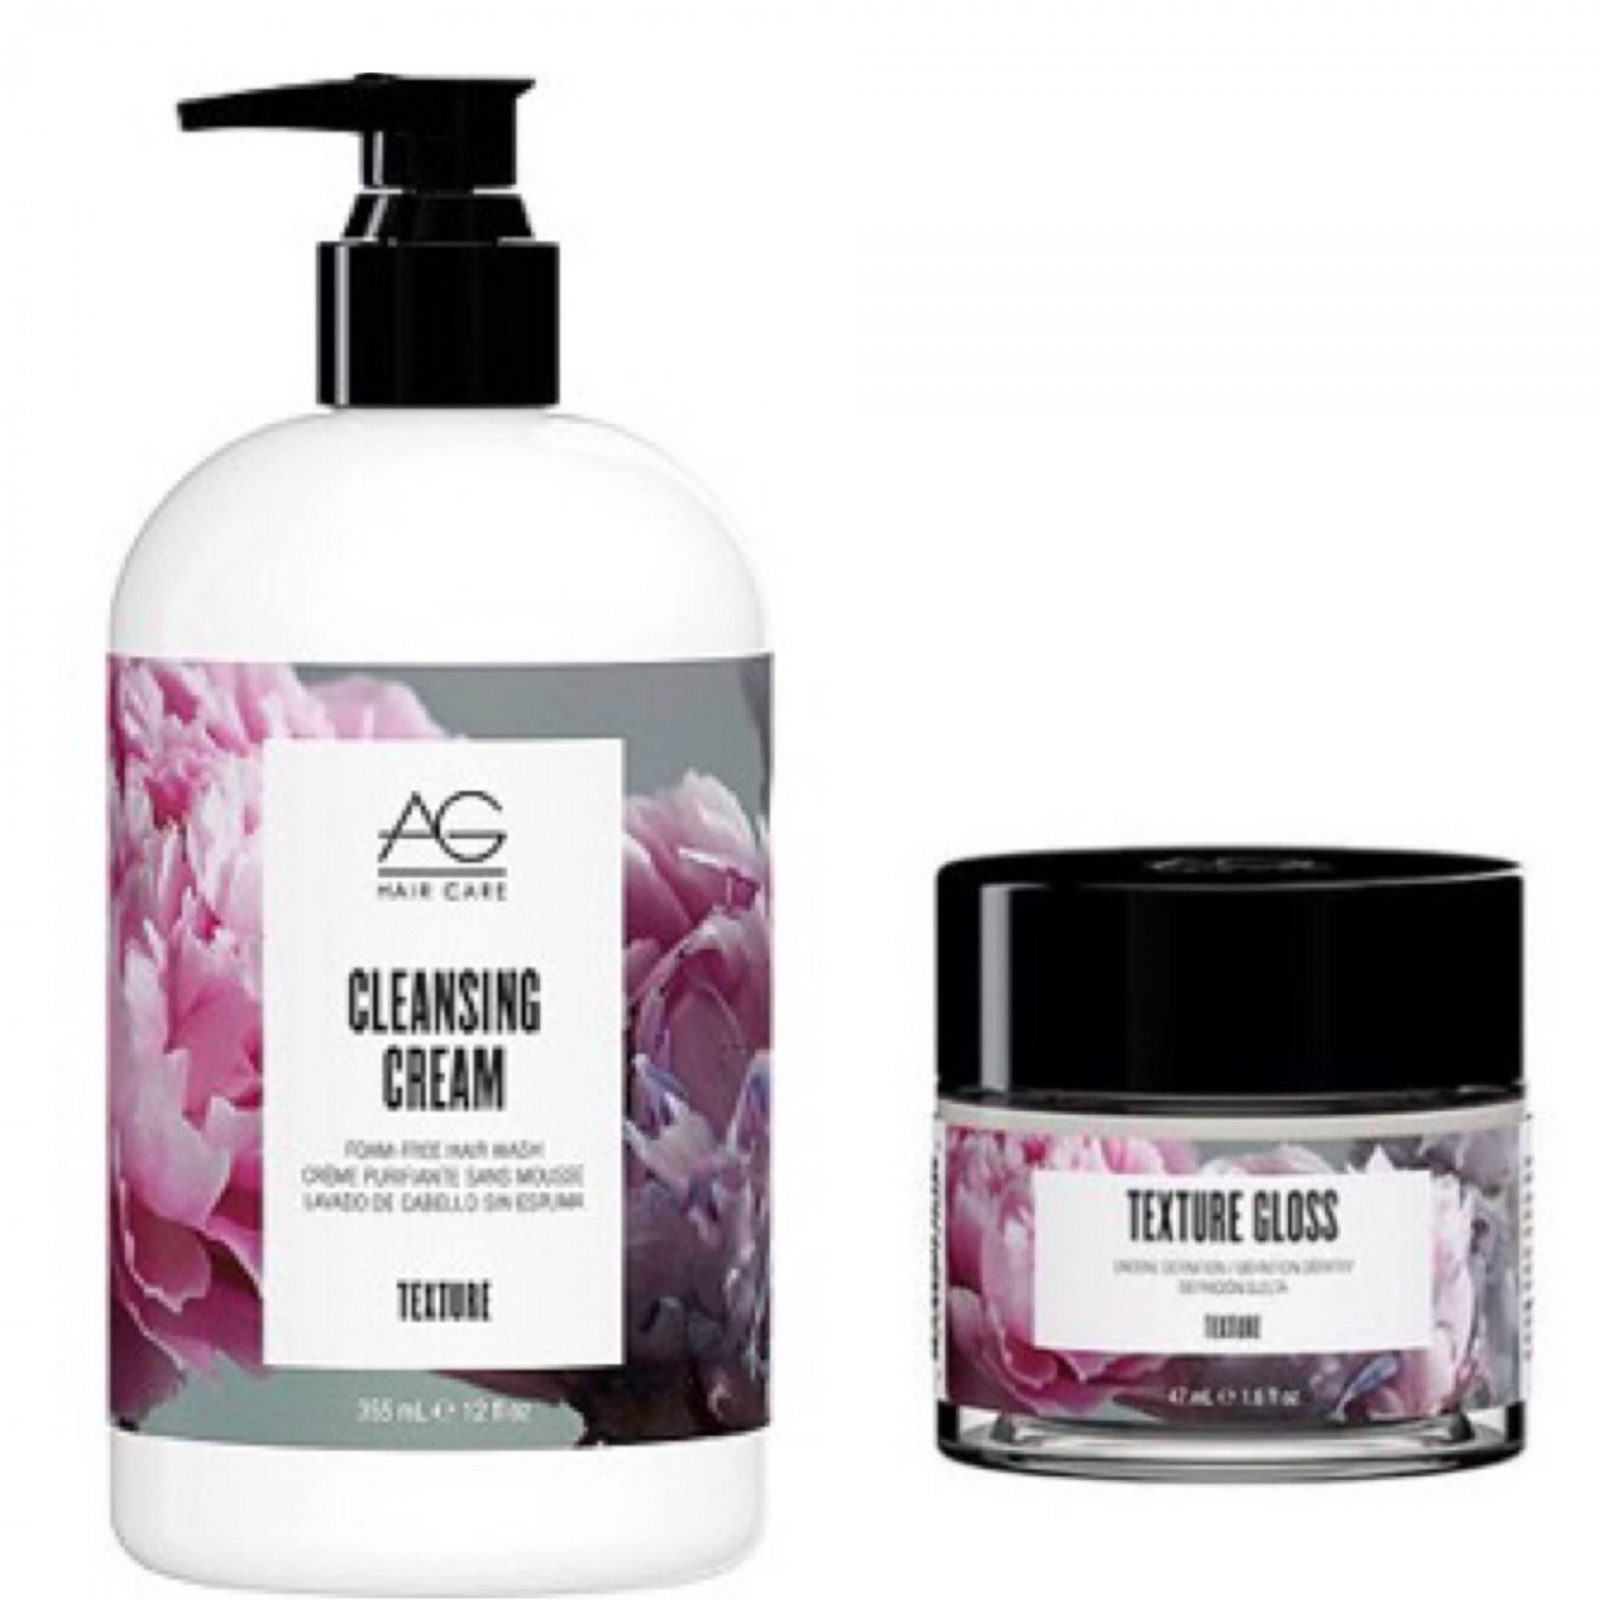 AG Hair Cleansing Cream and Texture Gloss